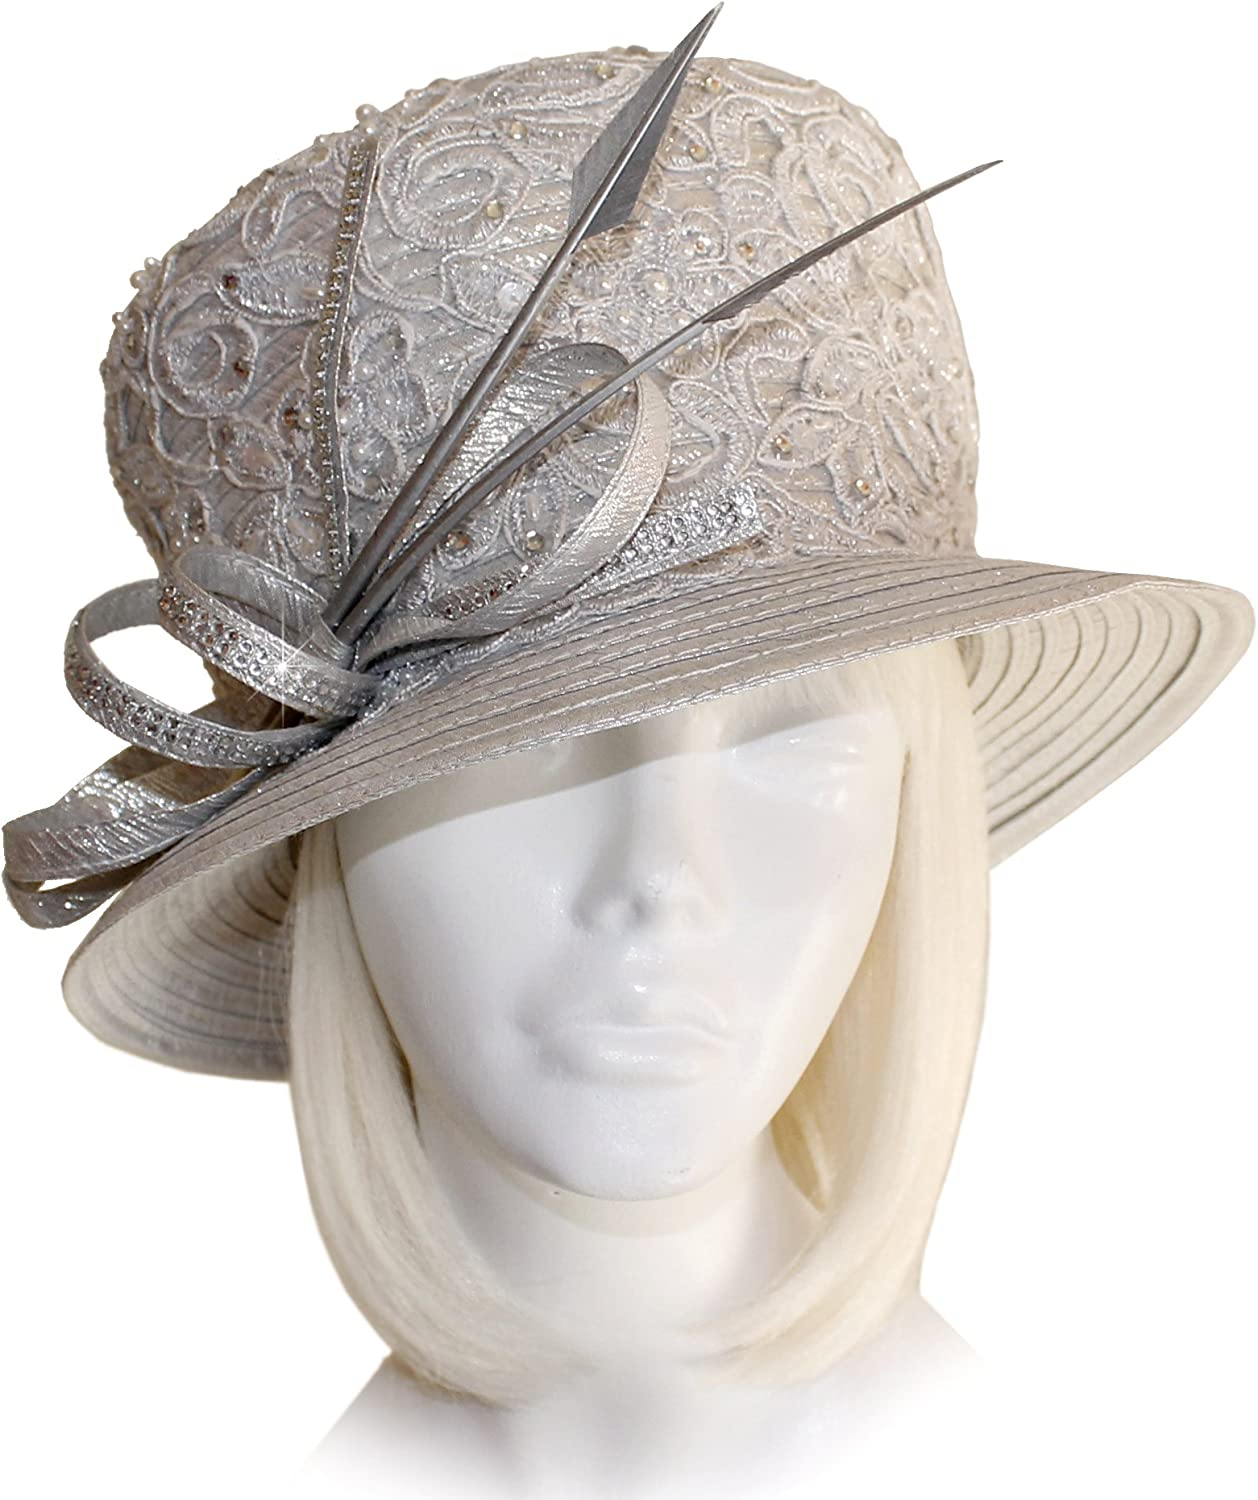 Mr. Song Millinery Classic Crown Small Brim Hat with Premium Lace  Q192 Pewter Silver